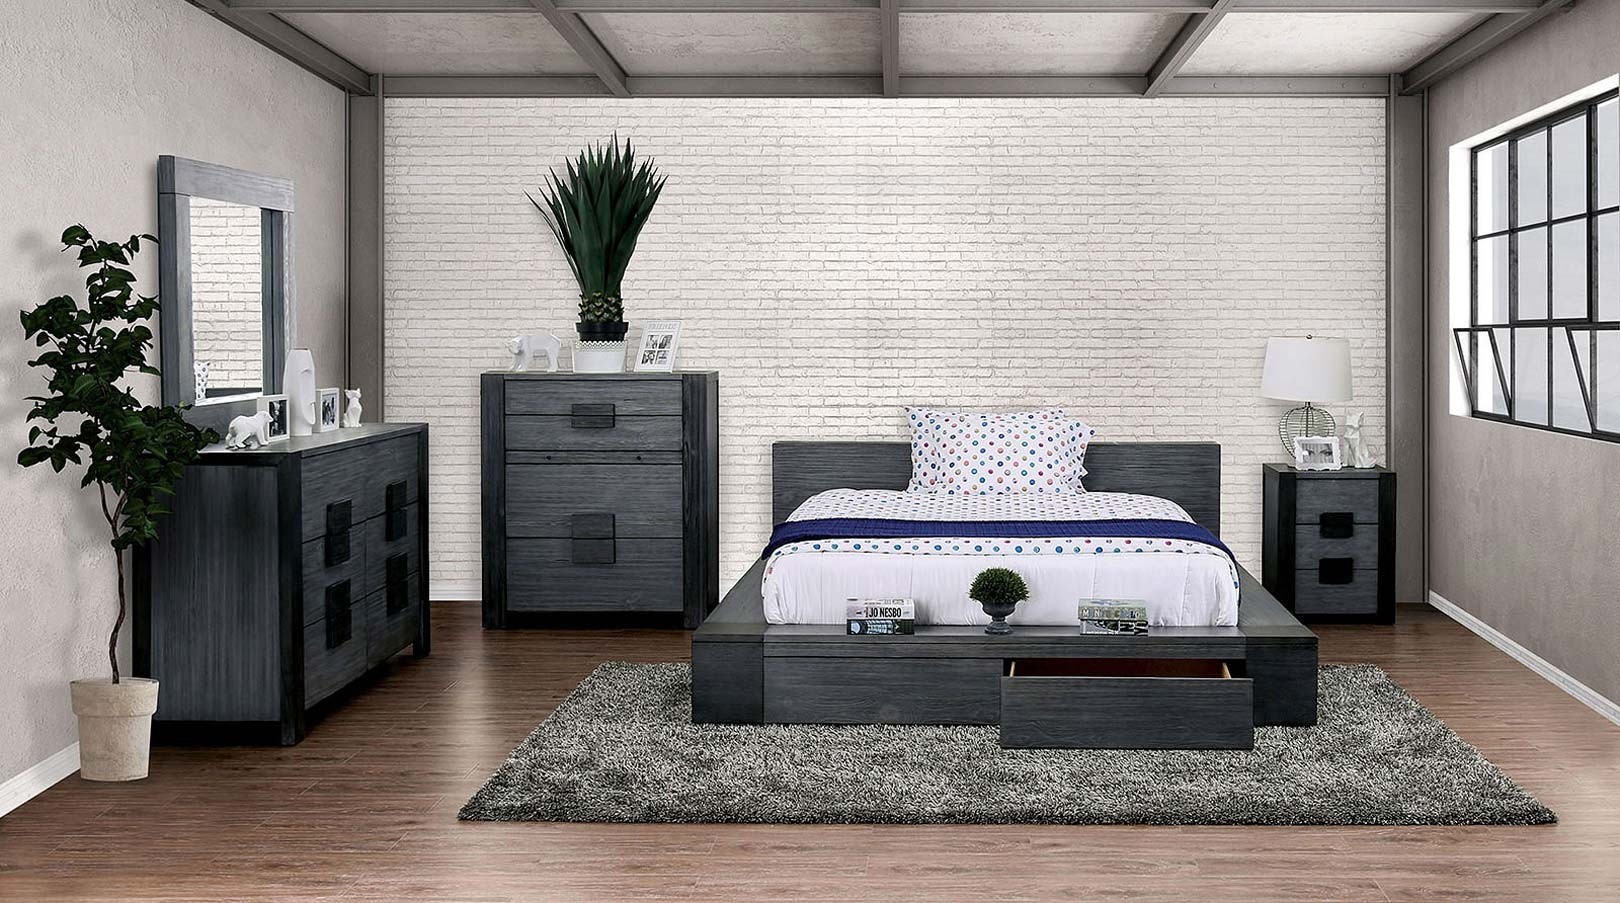 Janeiro Bedroom Set In Rustic Gray And Black By Furniture Of America